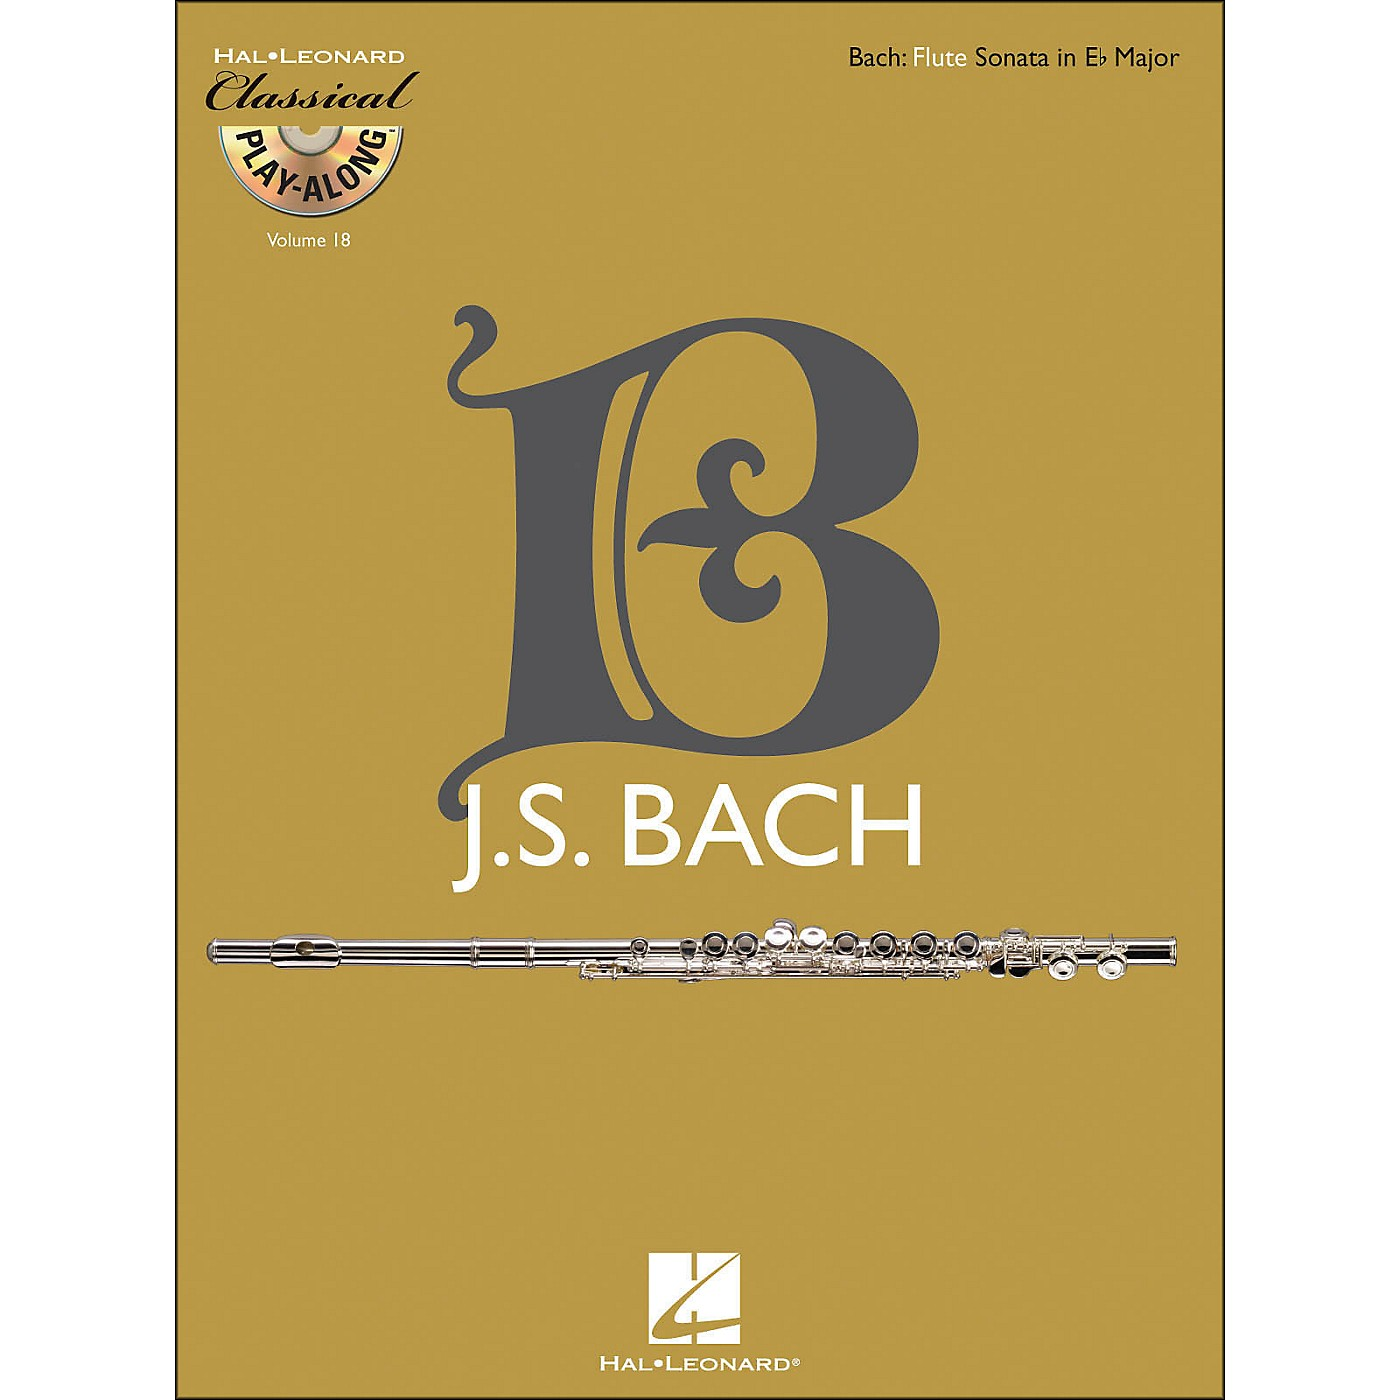 Hal Leonard Bach: Flute Sonata In E-Flat Major, Bwv 1031 - Classical Play-Along (Book/CD) Vol. 18 thumbnail